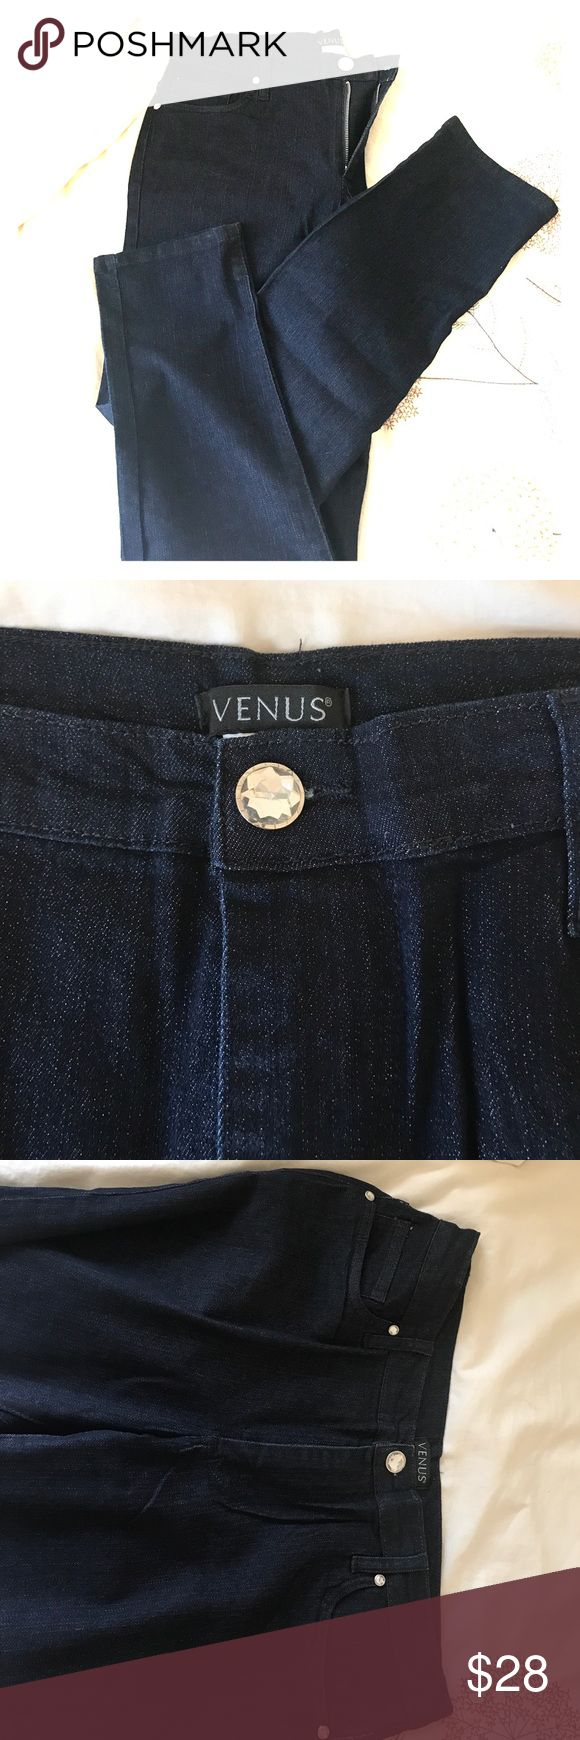 NWOT Extreme Dark Wash Stretch Jeans Extreme Dark Wash stretchy jeans, cute and comfy with faux crystal closure and ankle taper! Venus Jeans Ankle & Cropped